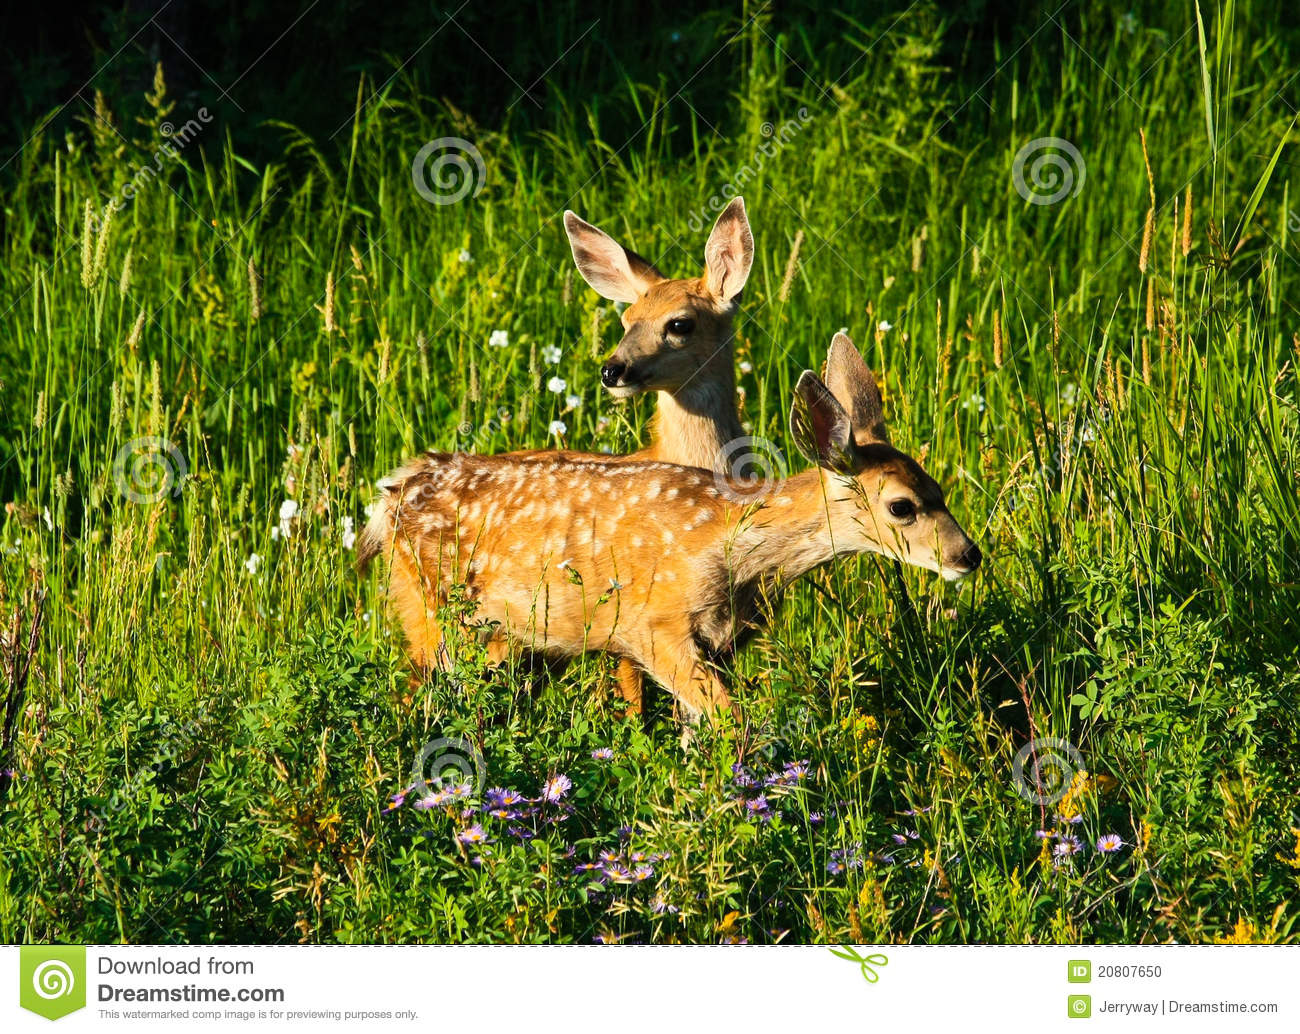 Cute Baby Rabbit Wallpapers Two Baby Deer In Forest Yellowstone Wyoming Stock Photo